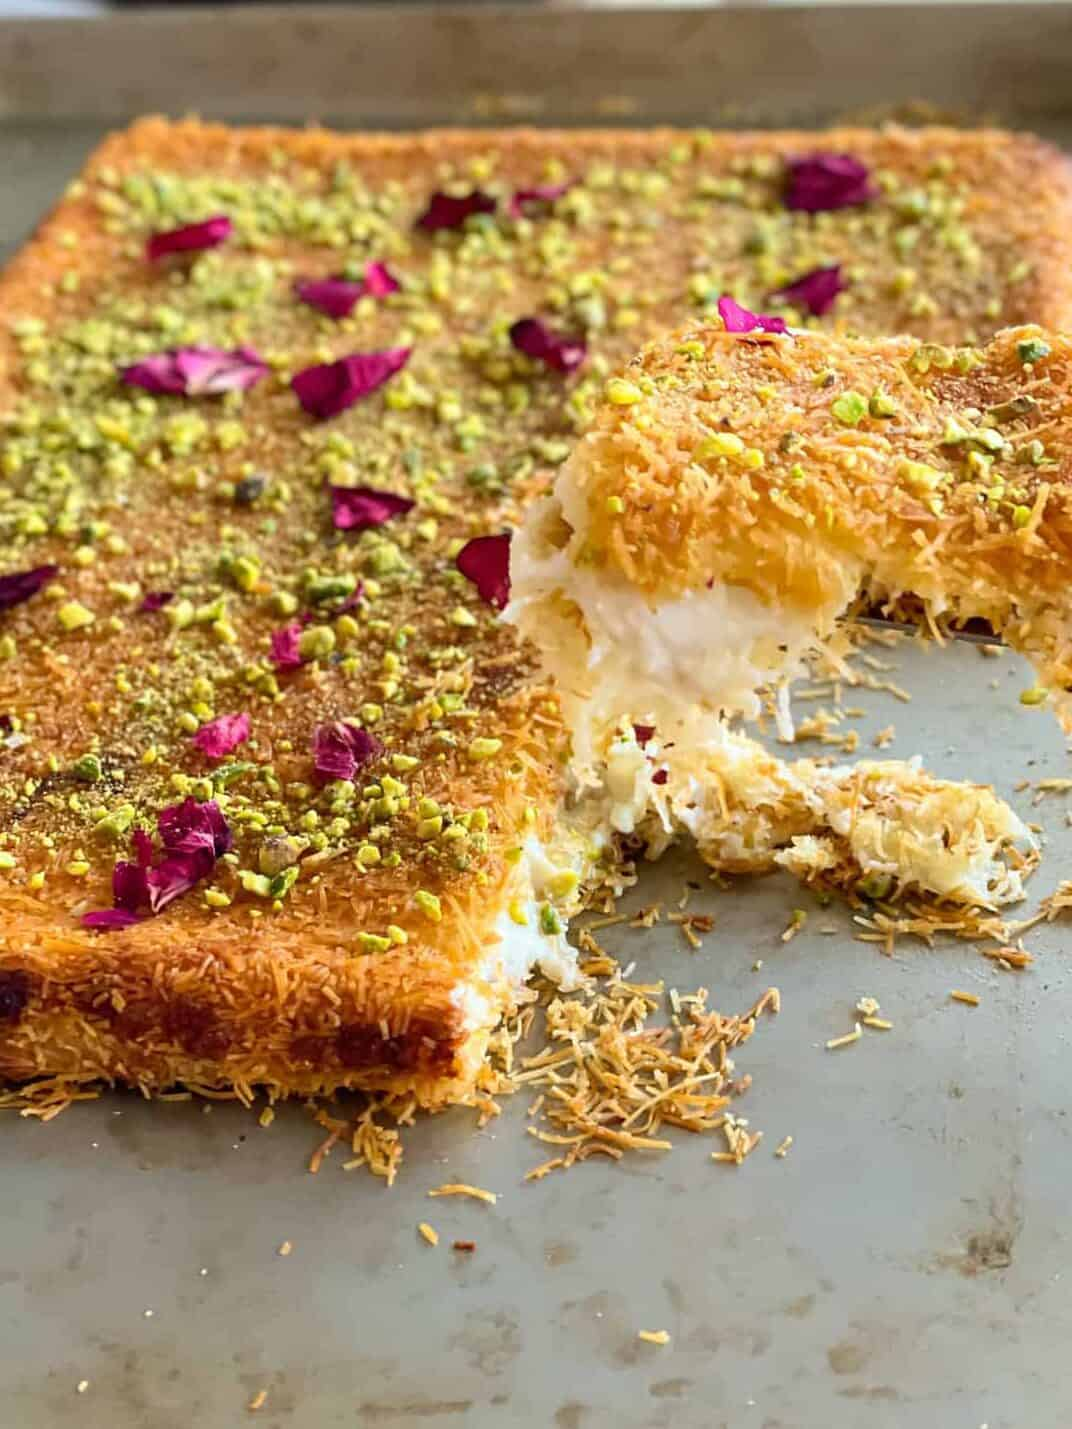 Kunafa Ashta Recipe with delicious phyllo dough, clotted-cream and cheese filling that is an easy dessert with simple ingredients. Also called knafeh, konafeh